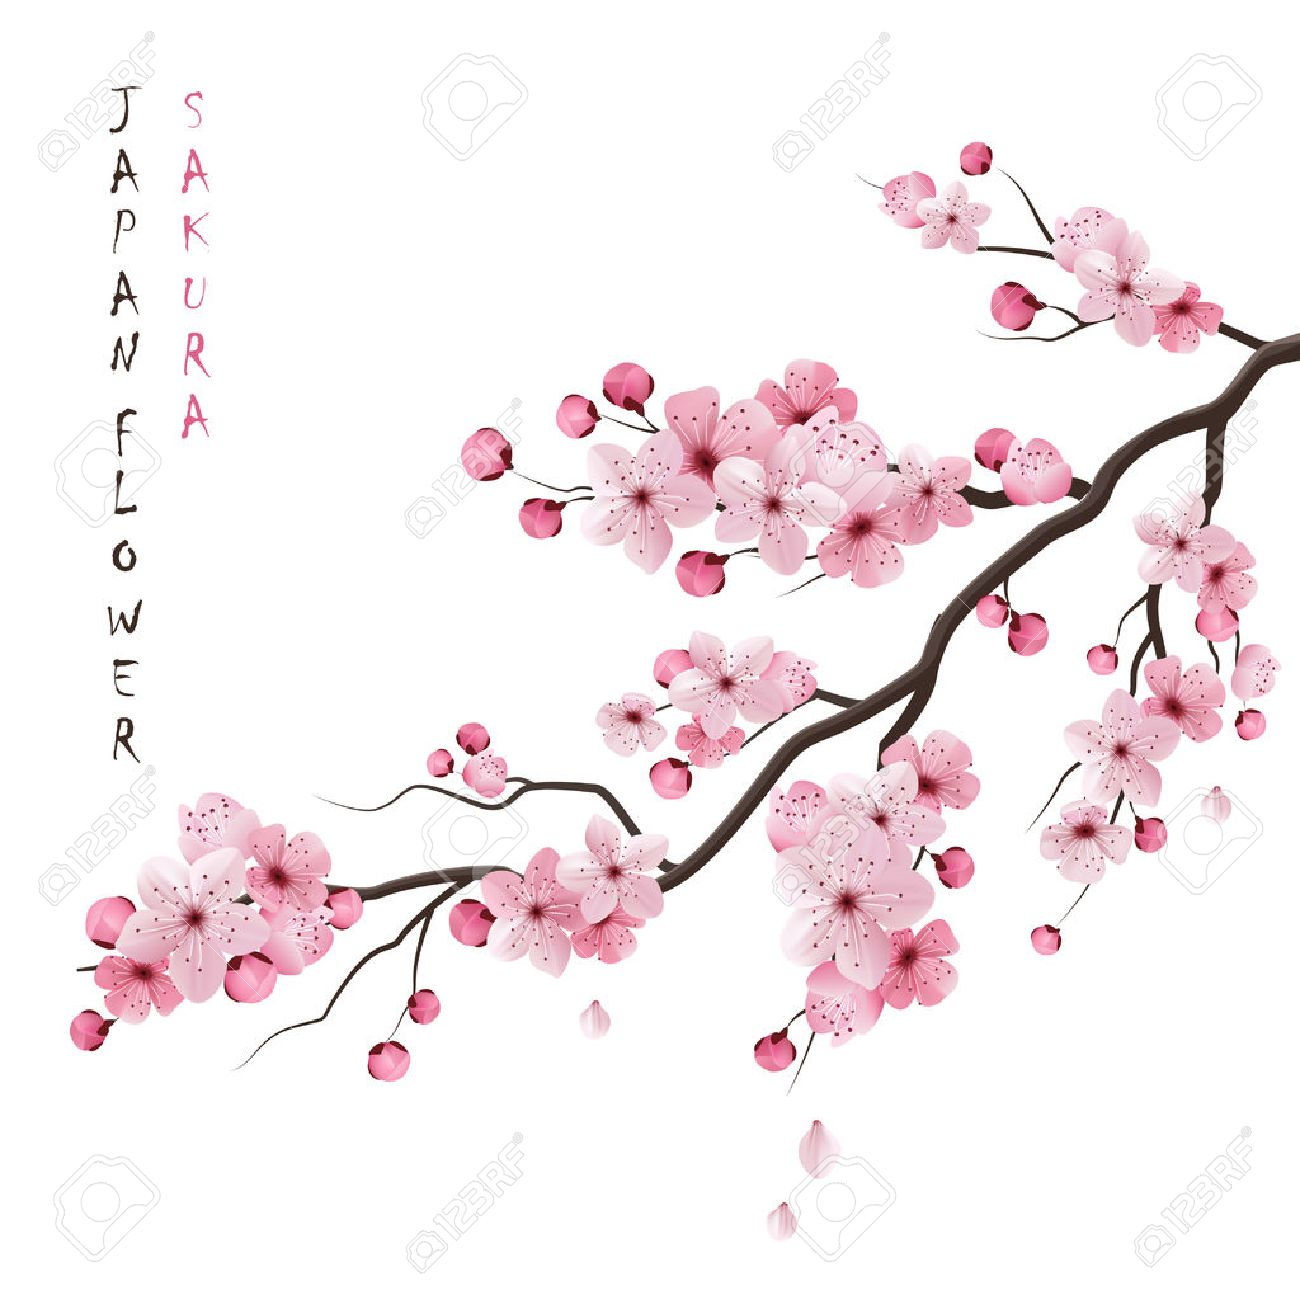 Realistic sakura japan cherry branch with blooming flowers vector illustration Stock Vector - 50704476